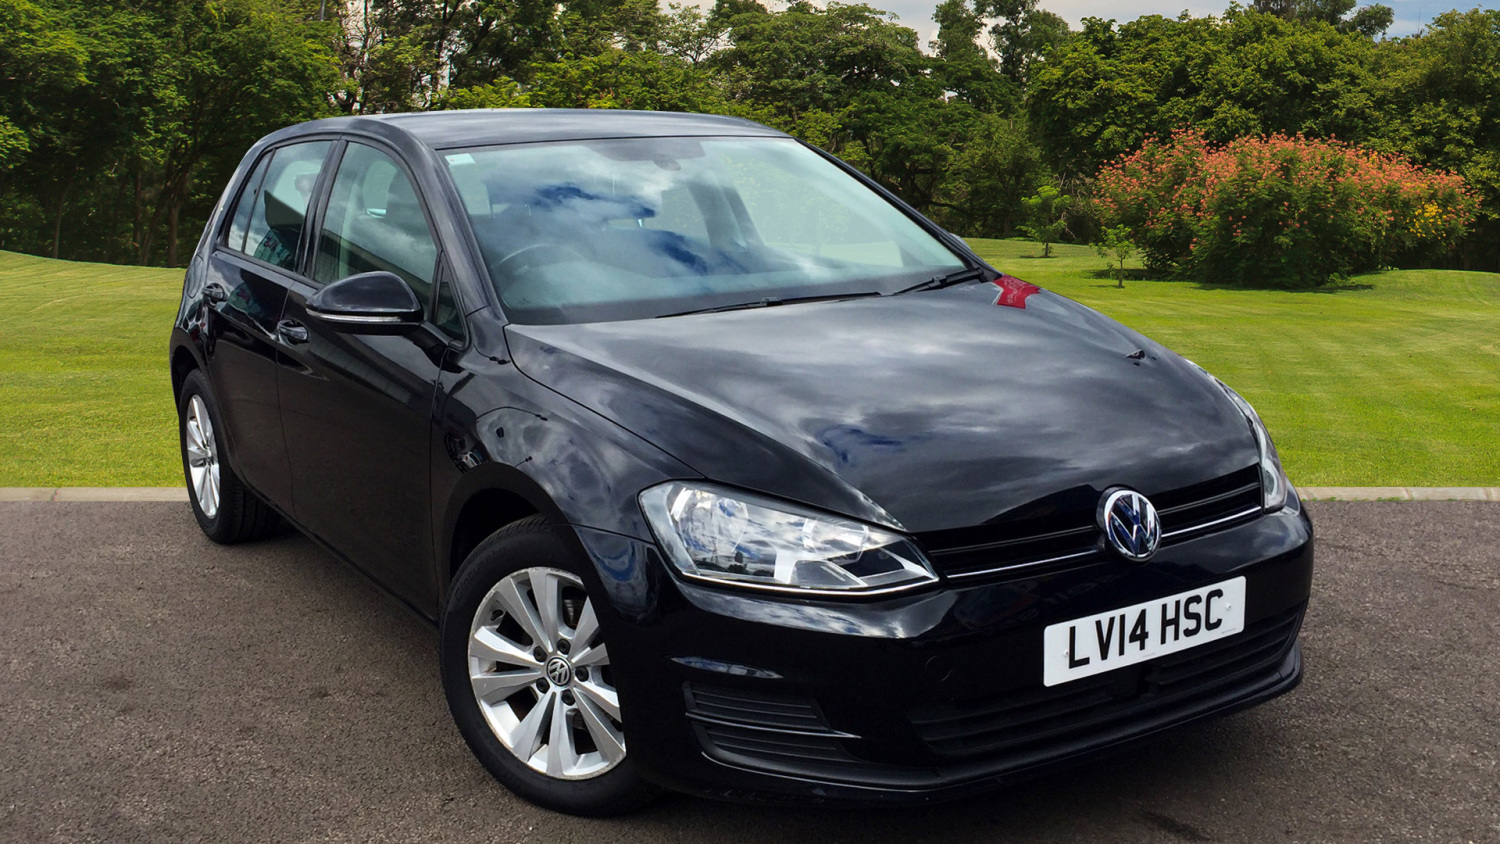 used volkswagen golf 1 6 tdi 105 se 5dr dsg diesel hatchback for sale vertu volkswagen. Black Bedroom Furniture Sets. Home Design Ideas